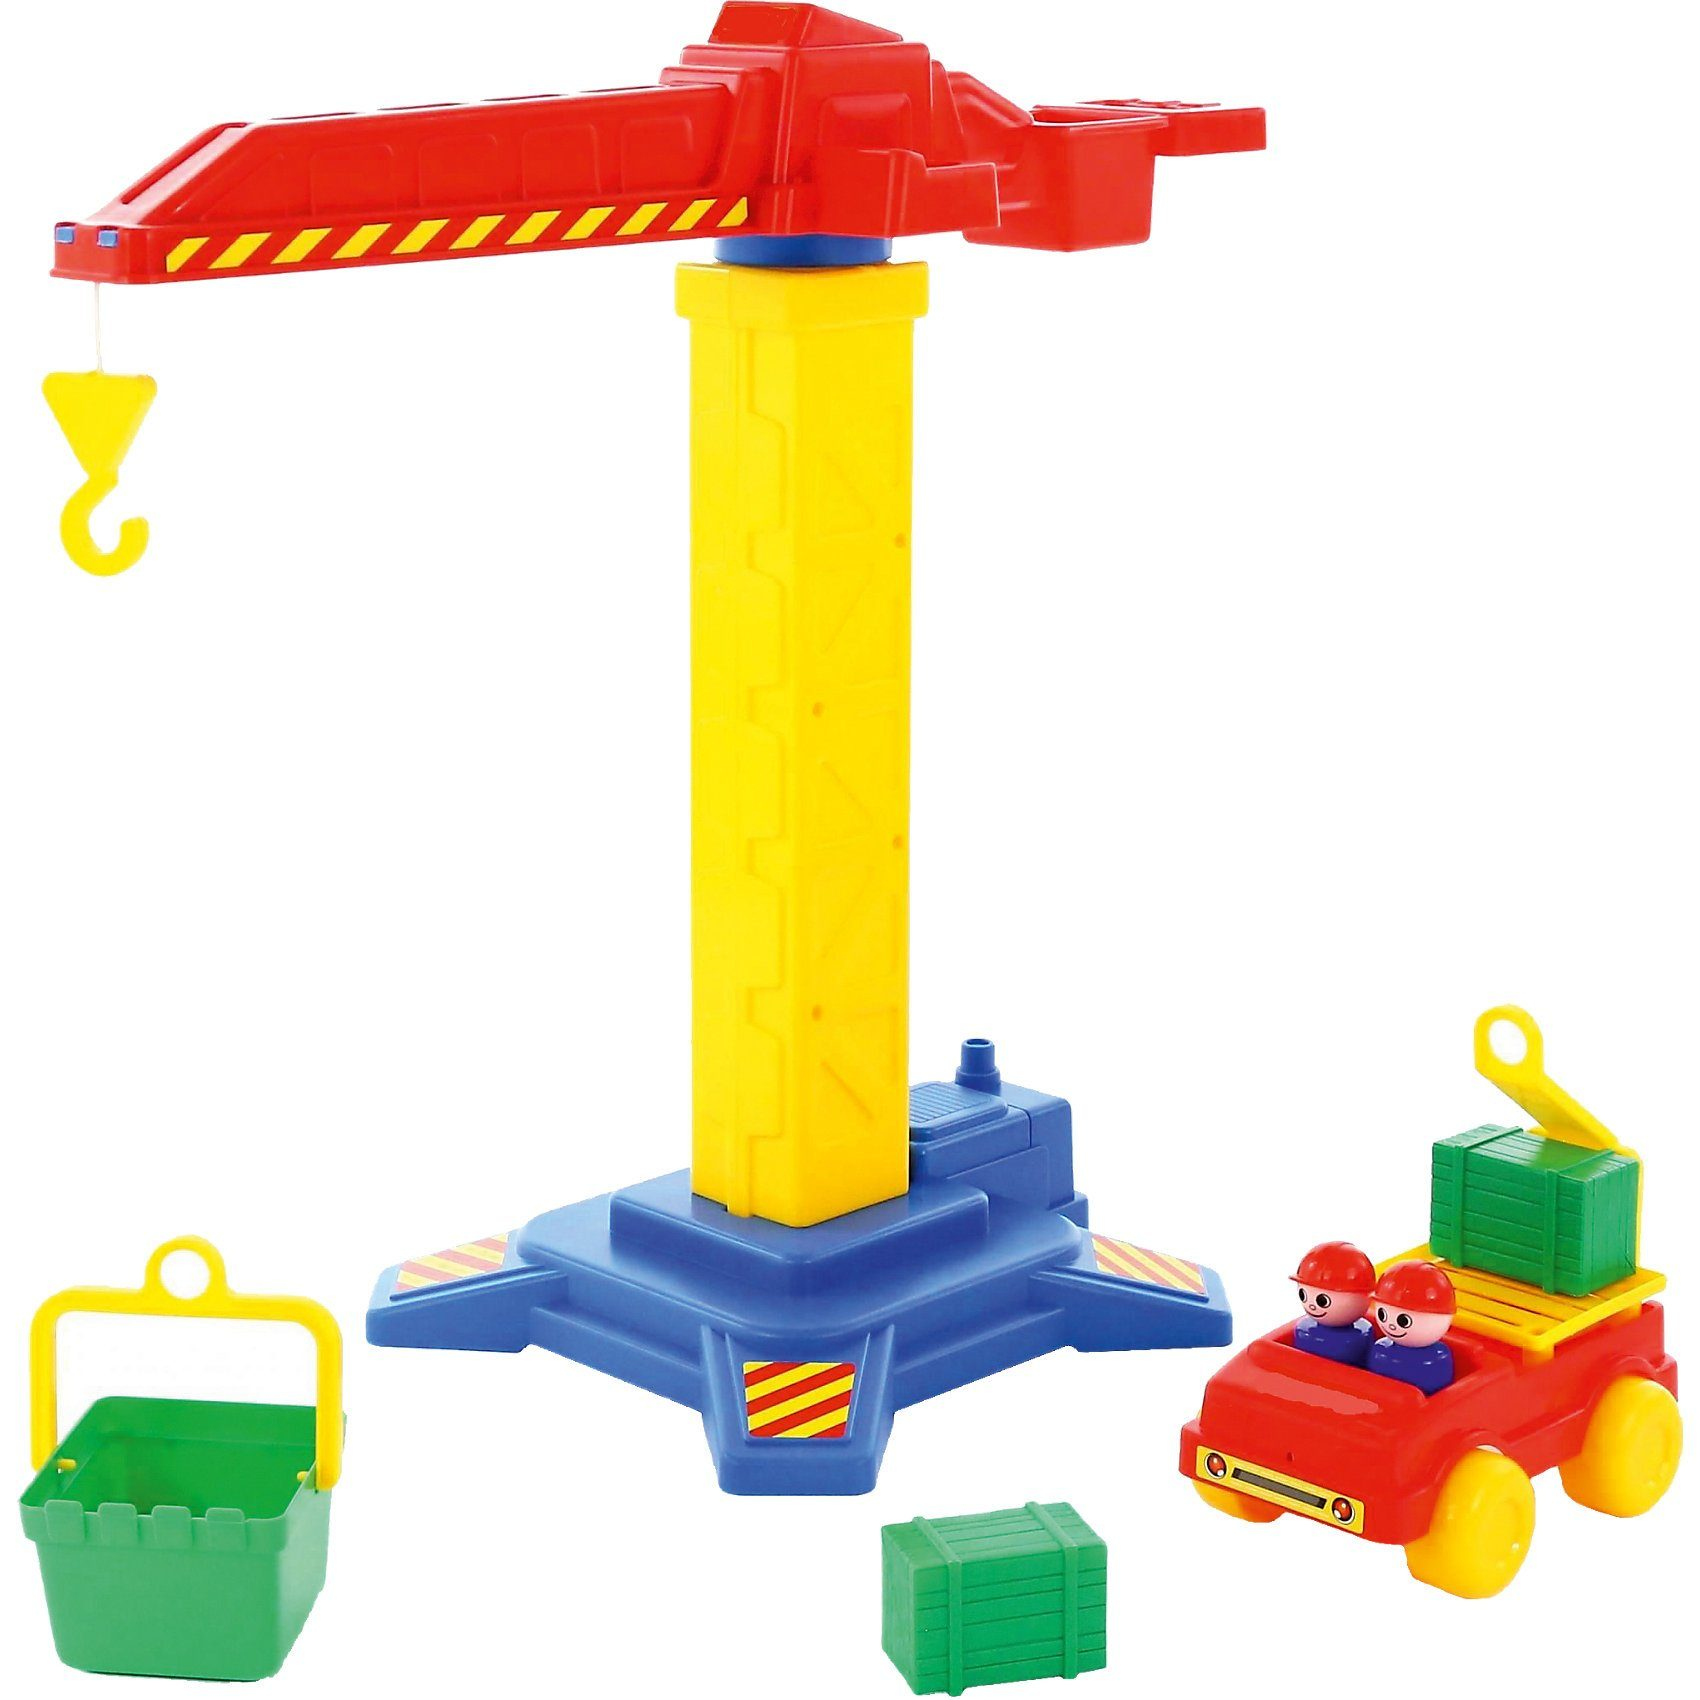 WADER QUALITY TOYS Baukranset mit Auto, 8-tlg.